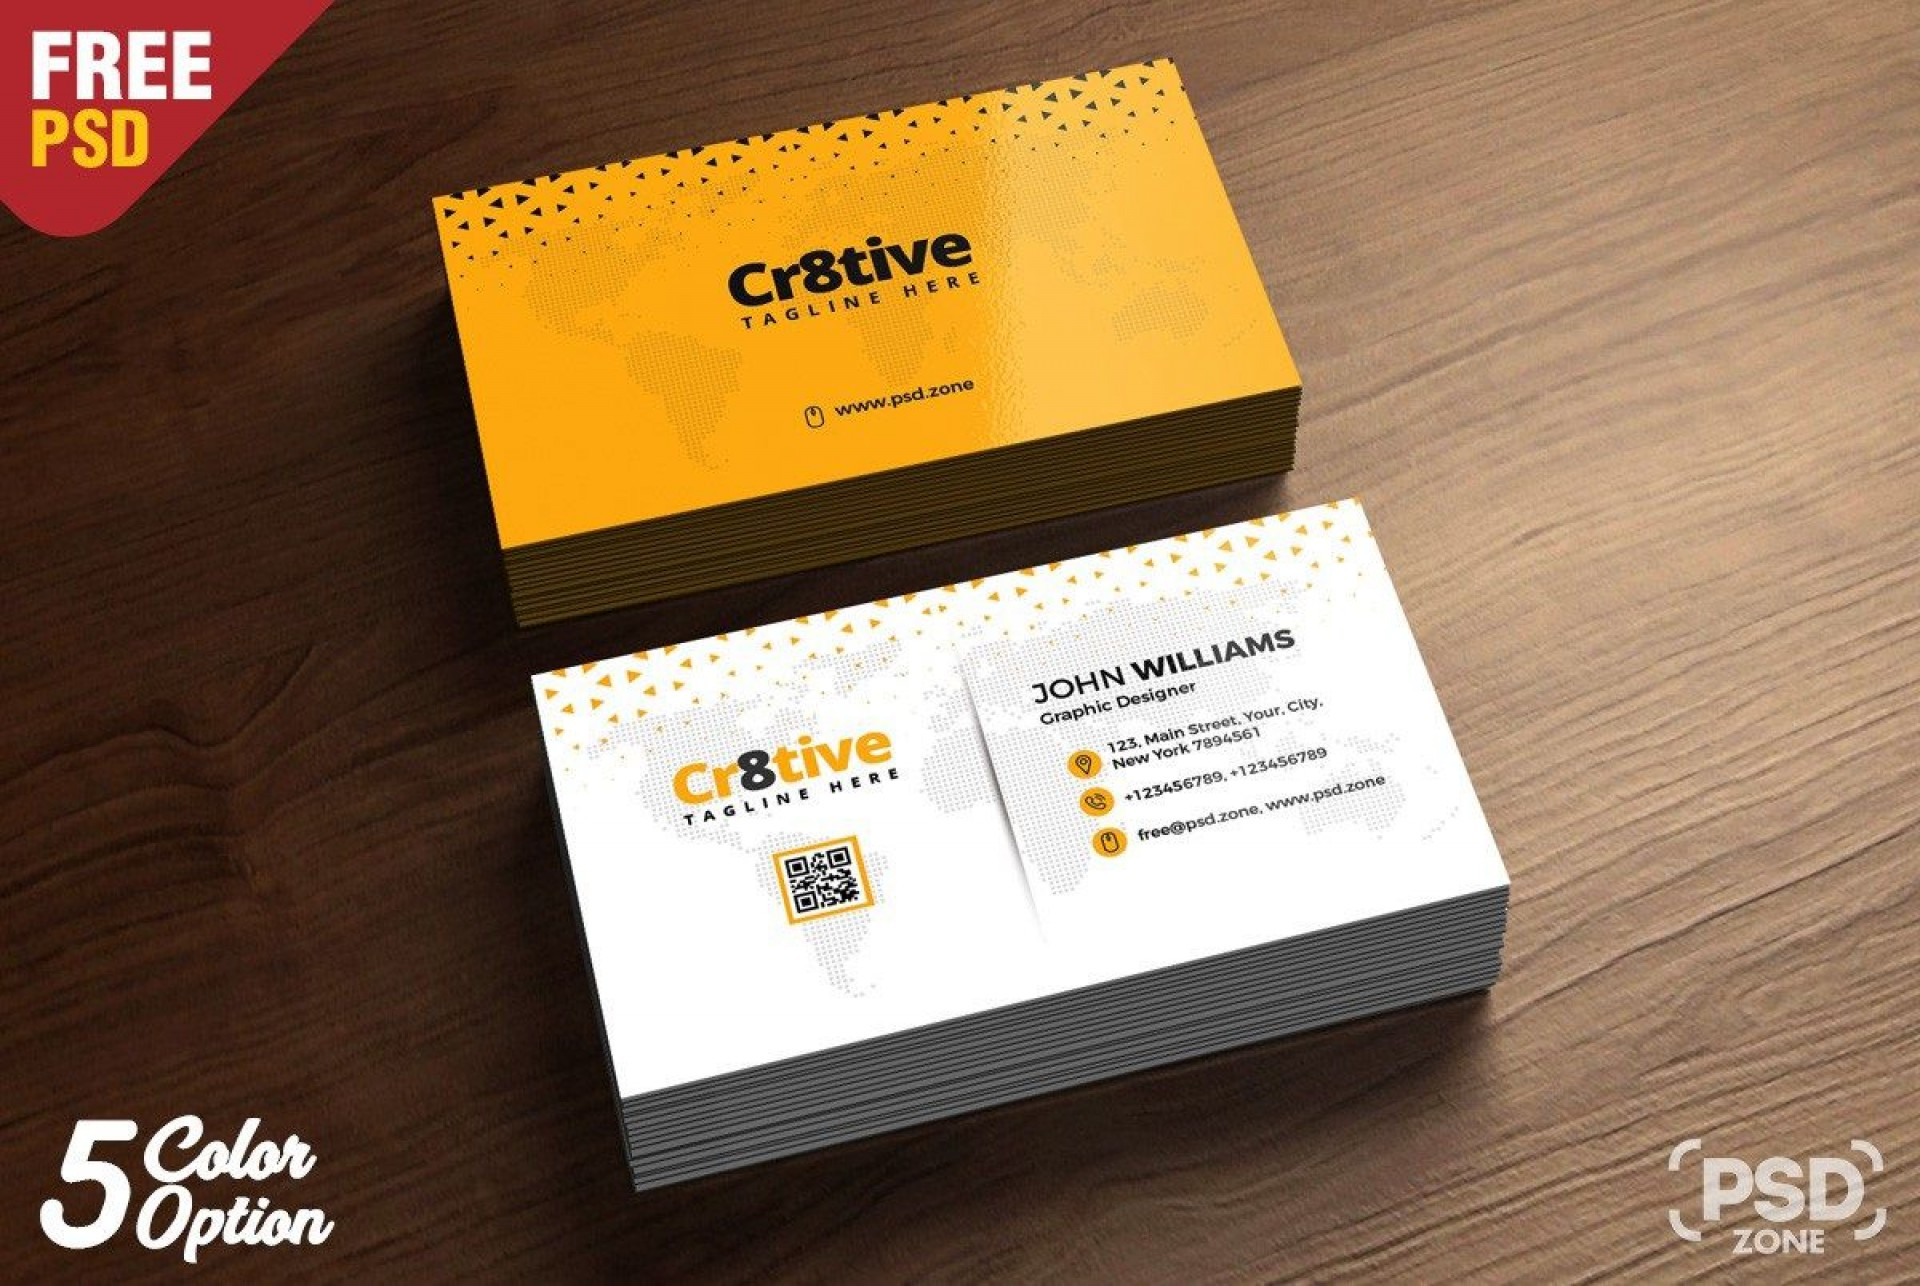 009 Remarkable Simple Visiting Card Design Psd Inspiration  Minimalist Busines Template Free File Download In Photoshop1920